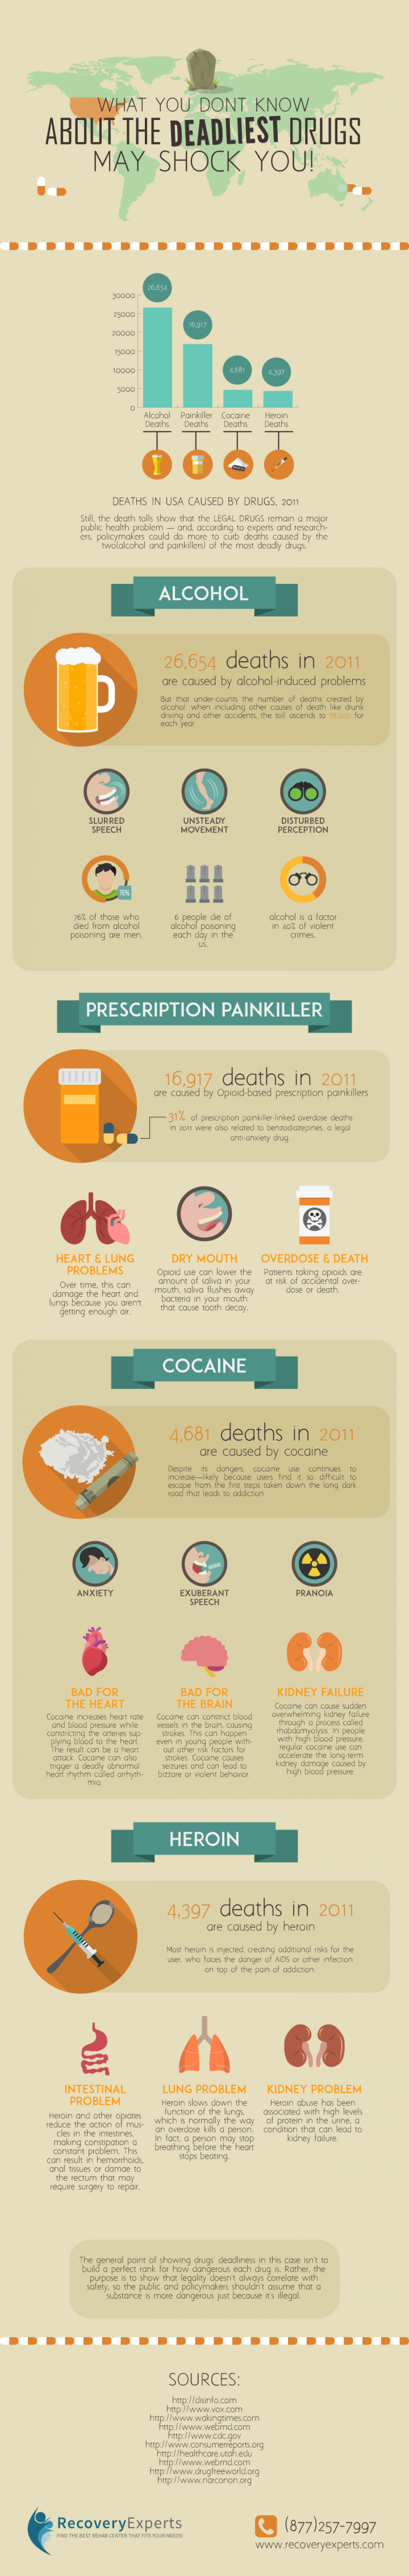 What You Don't Know About the Deadliest Drugs May Shock You Infographic